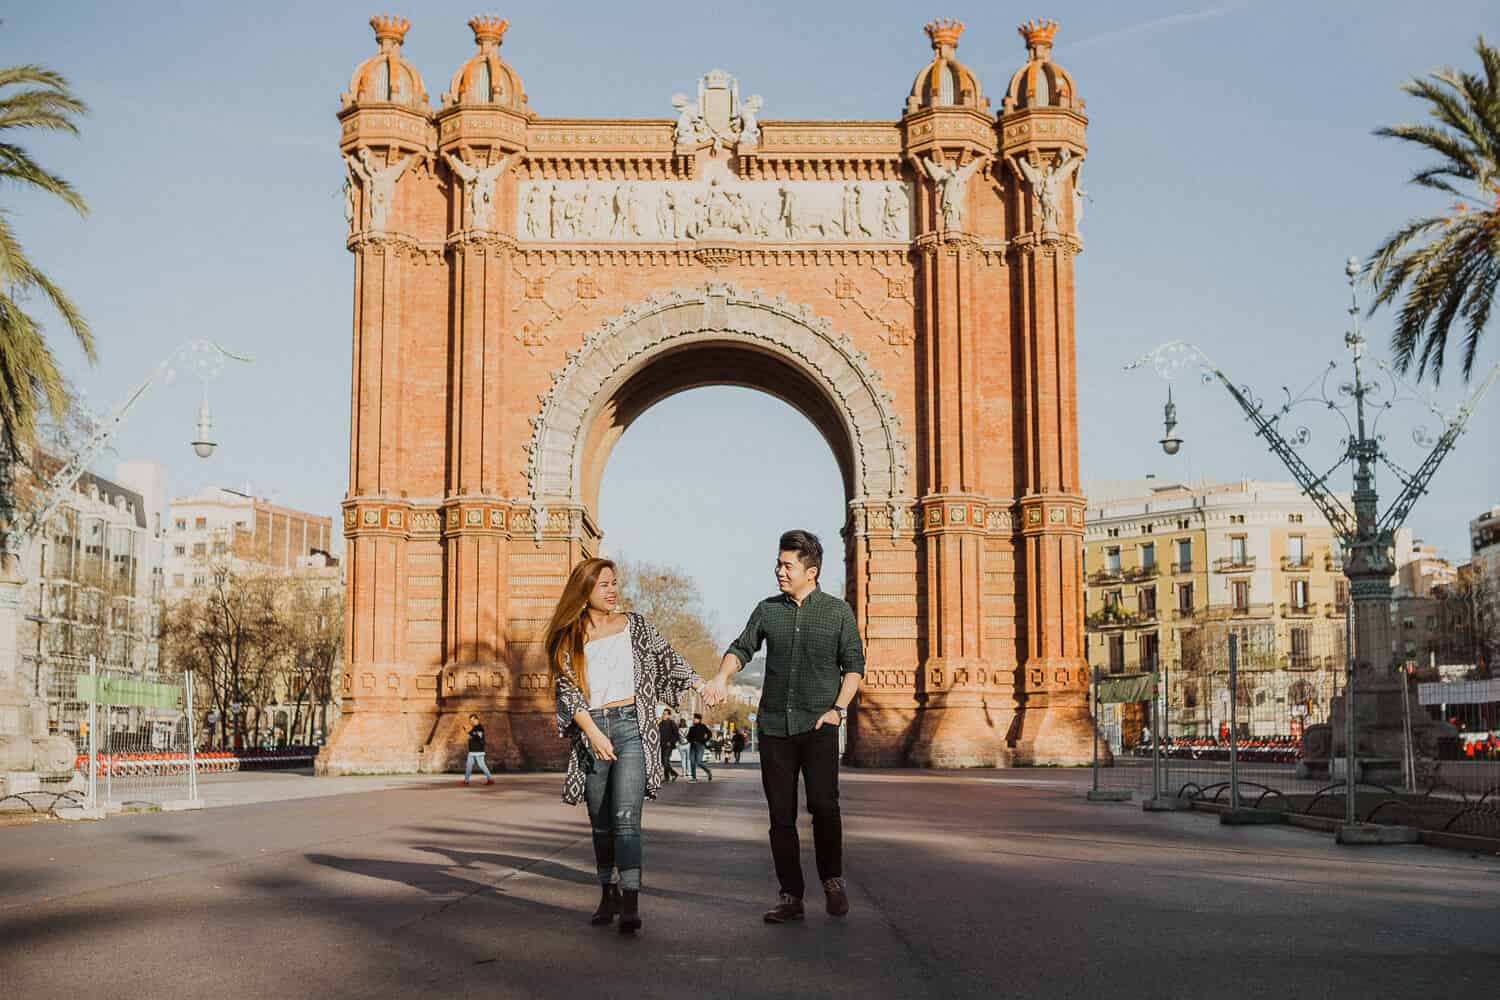 Barcelona photo shoot in Arc de Triomf